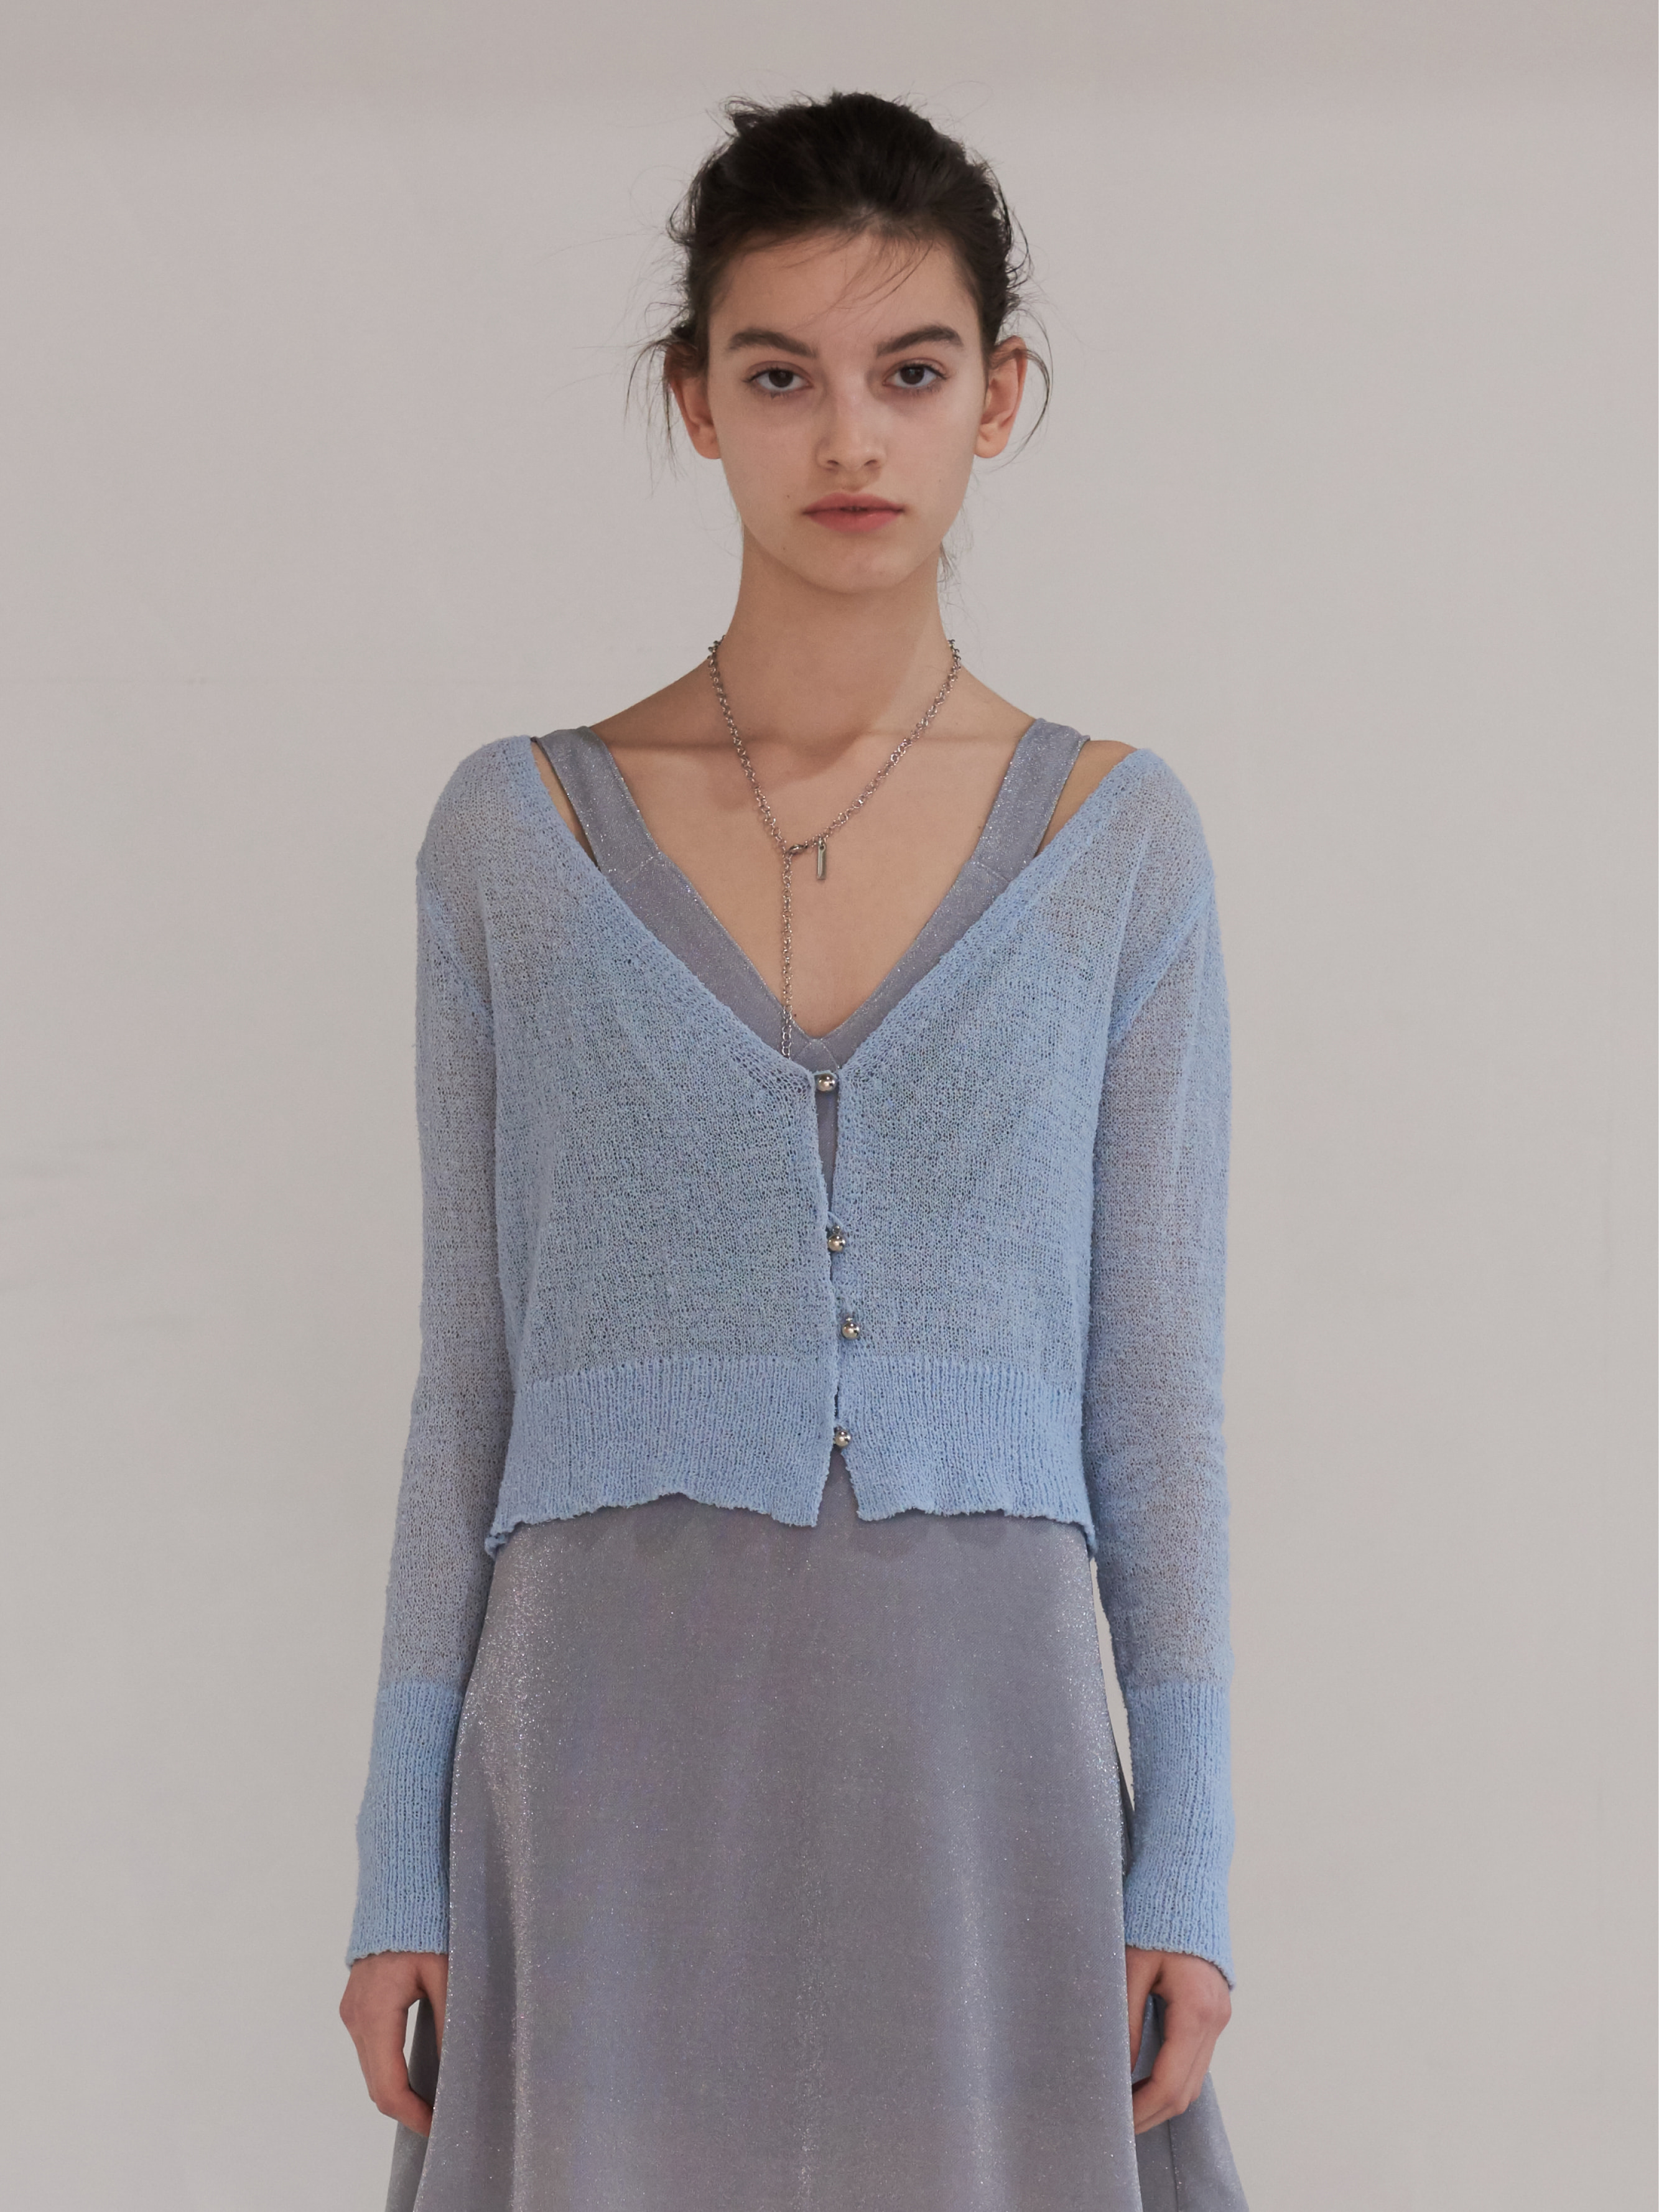 SEE-THROUGH KNIT CARDIGAN (LIGHT BLUE)